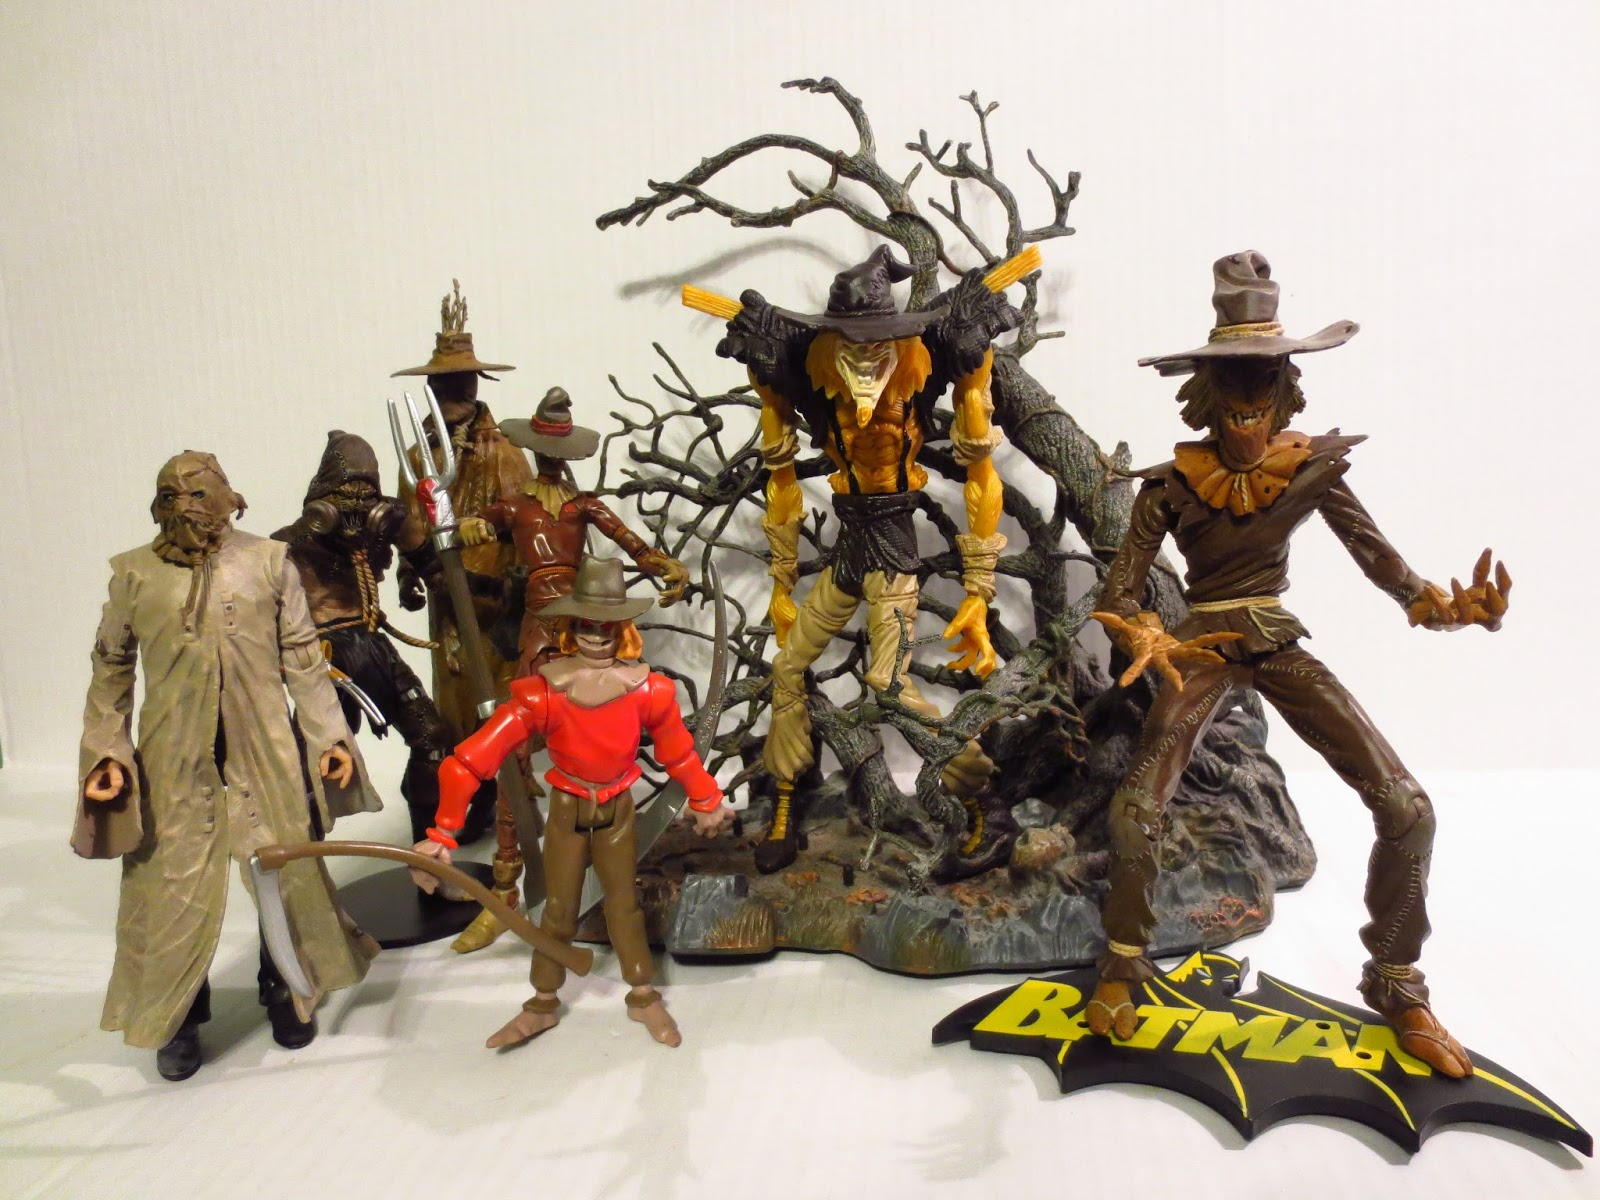 Action Figure Review 90s Edition Twister Strike Scarecrow From Legends Of The Dark Knight By Kenner Confirmed Great